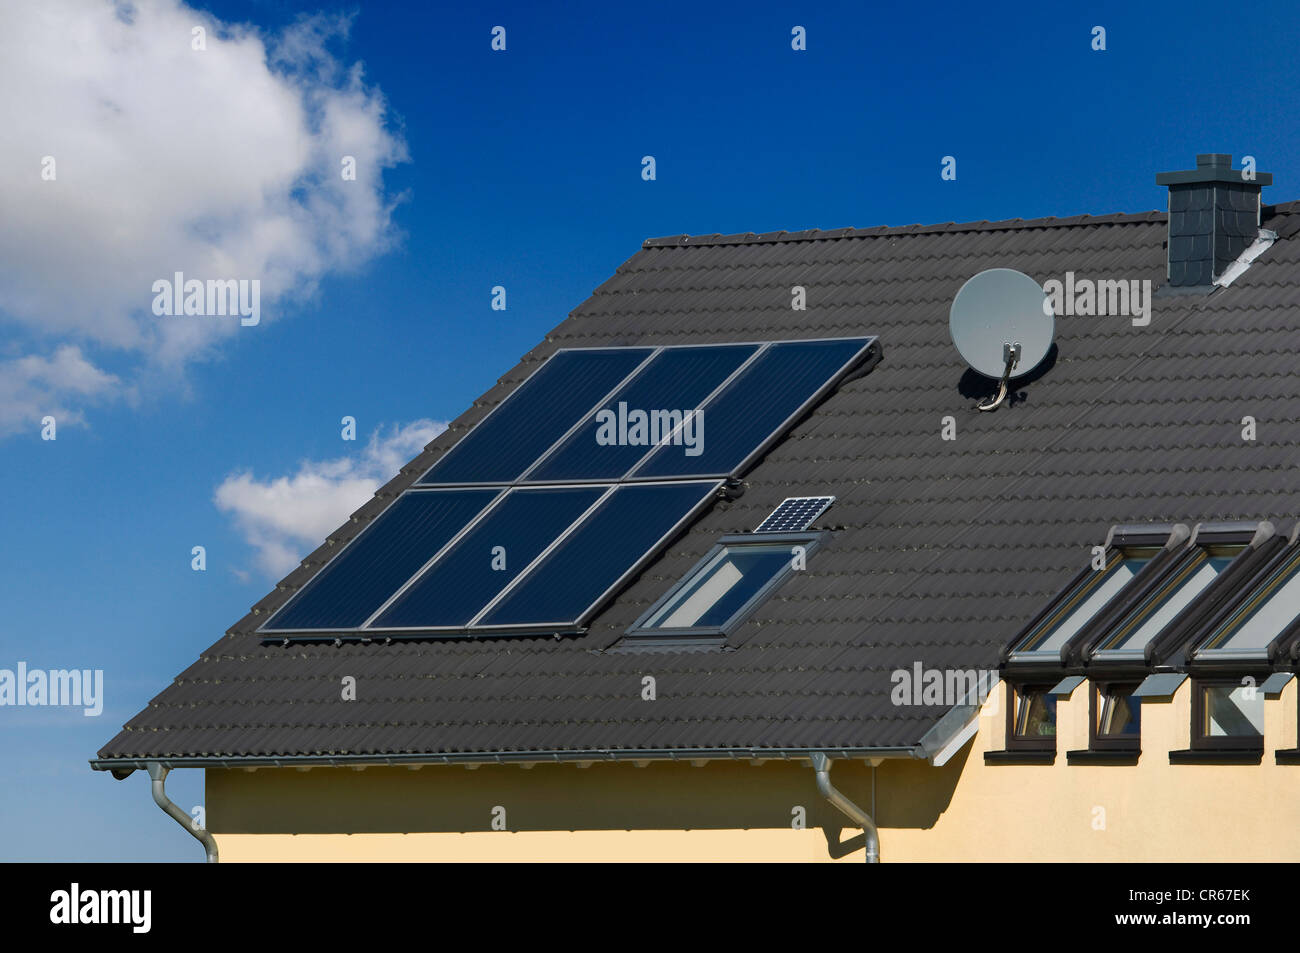 Residential building with solar panels for water heating on the roof, solar heat, Bonn, North Rhine-Westphalia, - Stock Image